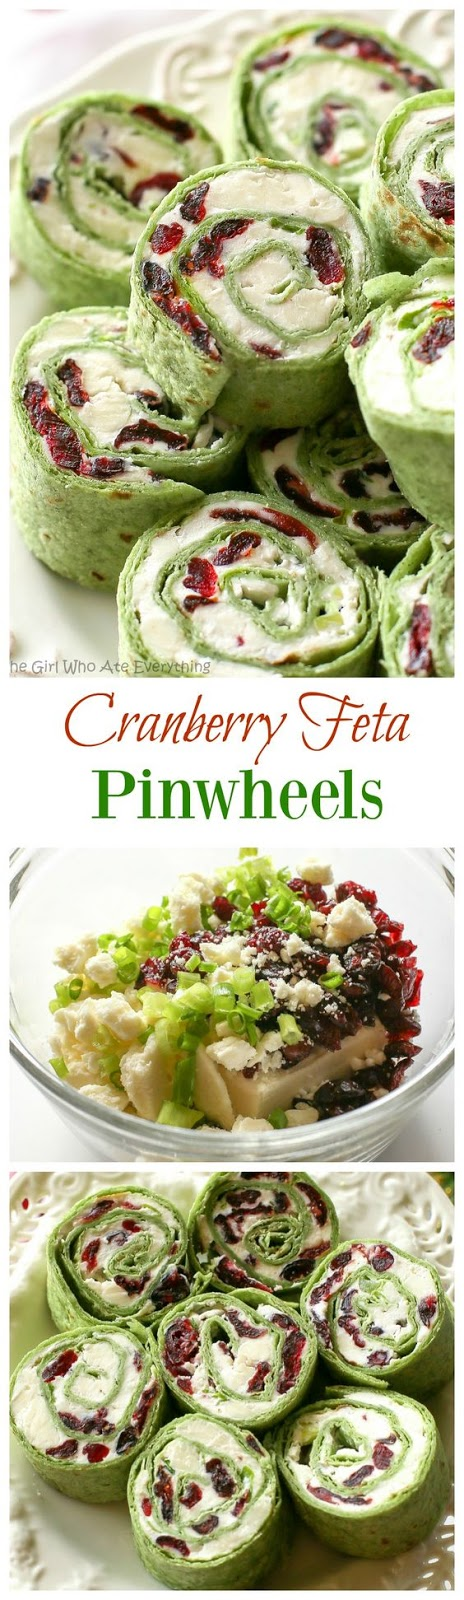 ★★★★☆ 1769 ratings | CRANBERRY AND FETA PINWHEELS #CRANBERRY #FETA #PINWHEELS #CHRISTMAS #DELICIOUS